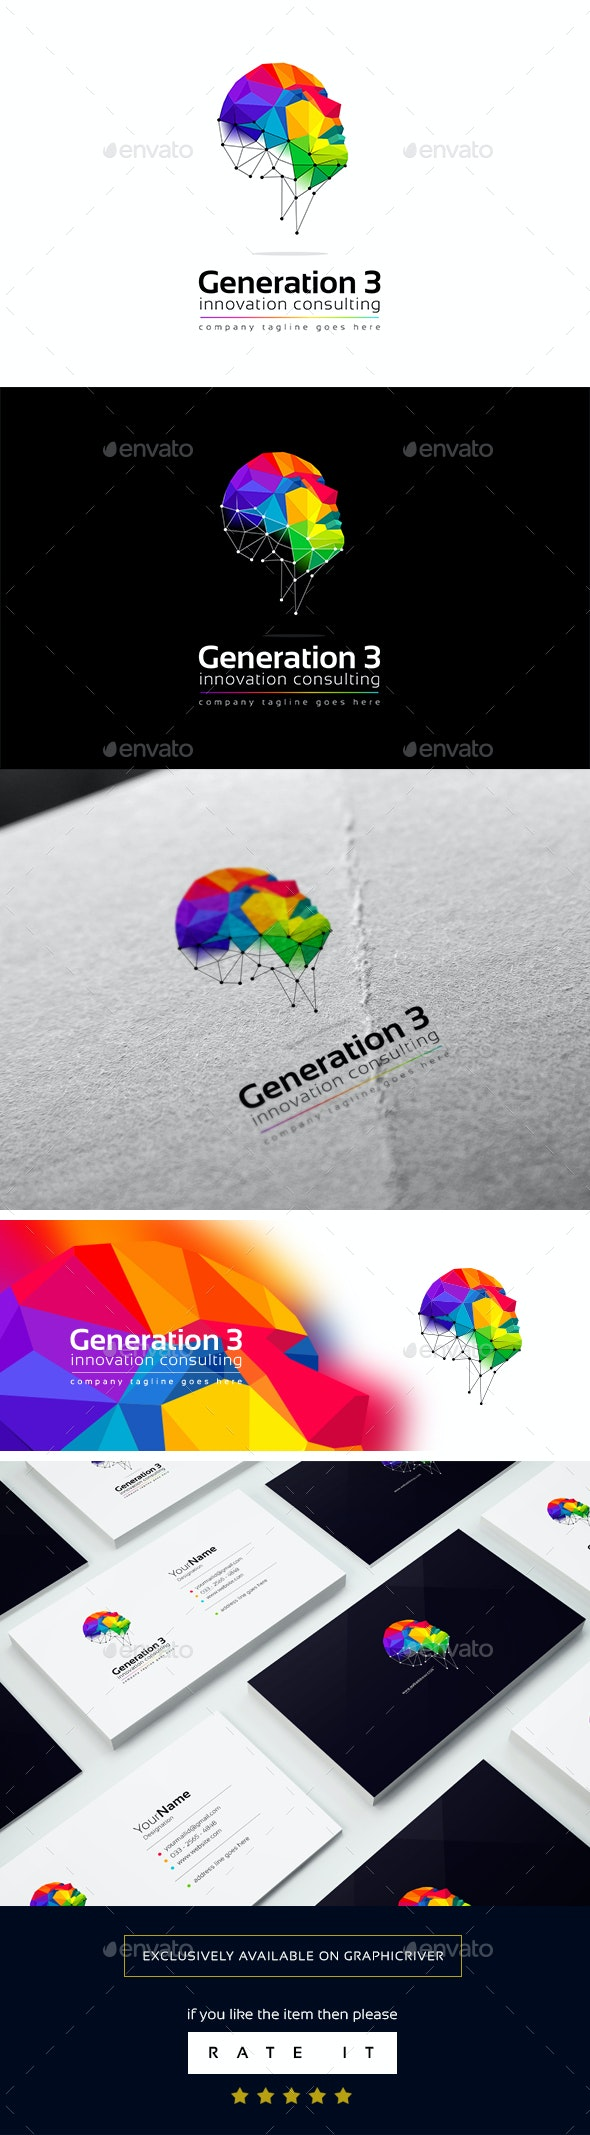 Generation 3 logo template - 3d Abstract